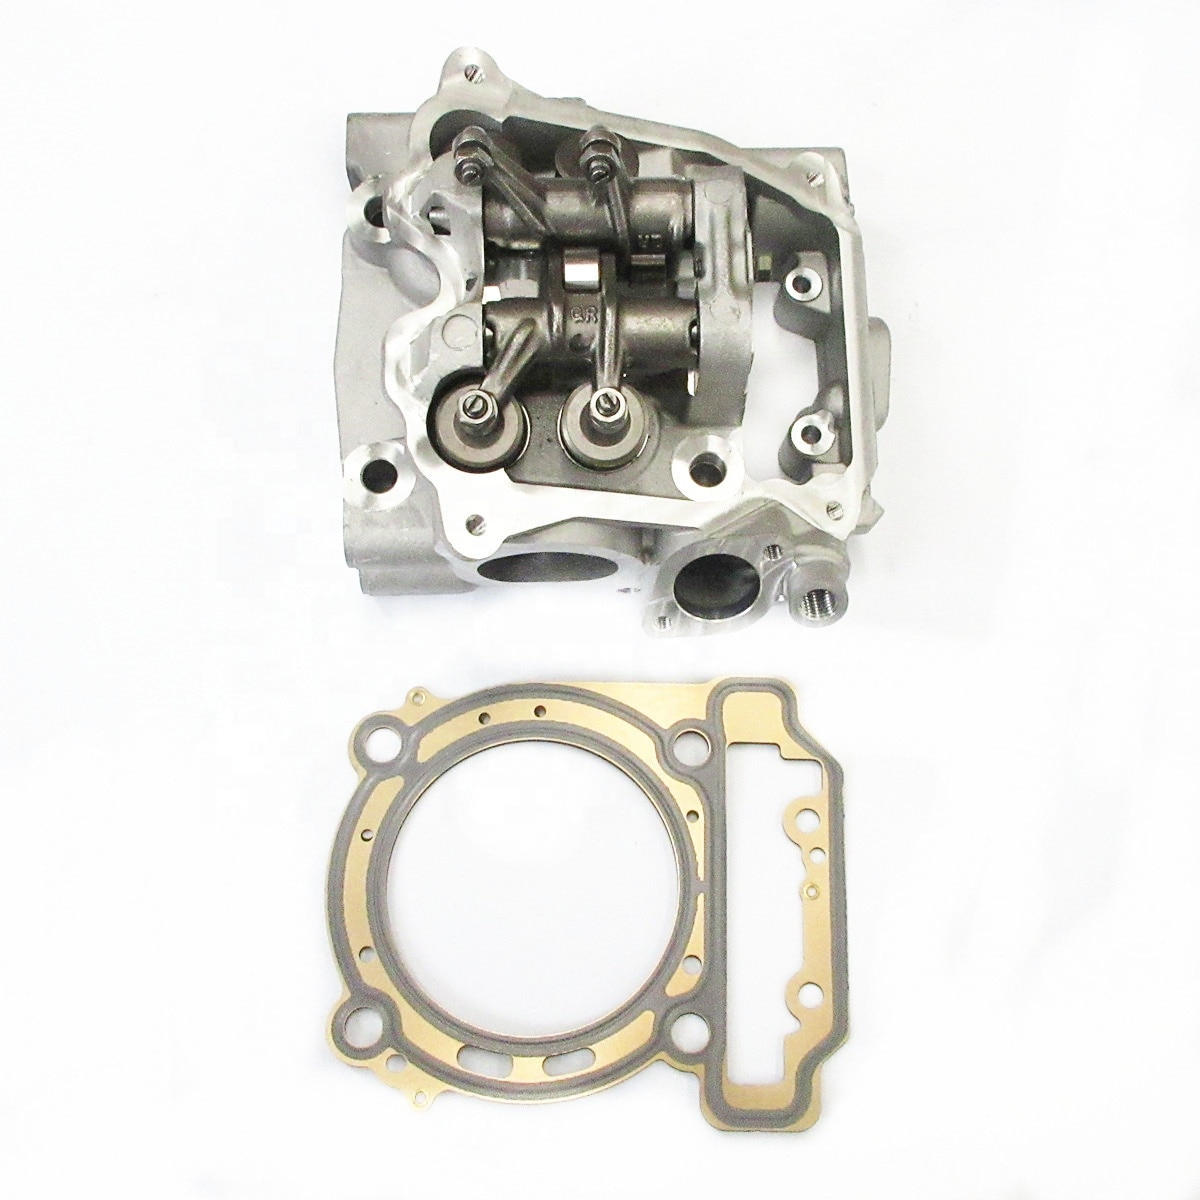 Odes Liangzi 800cc Rear Cylinder Head for ATV Quad 4x4 Engine Parts